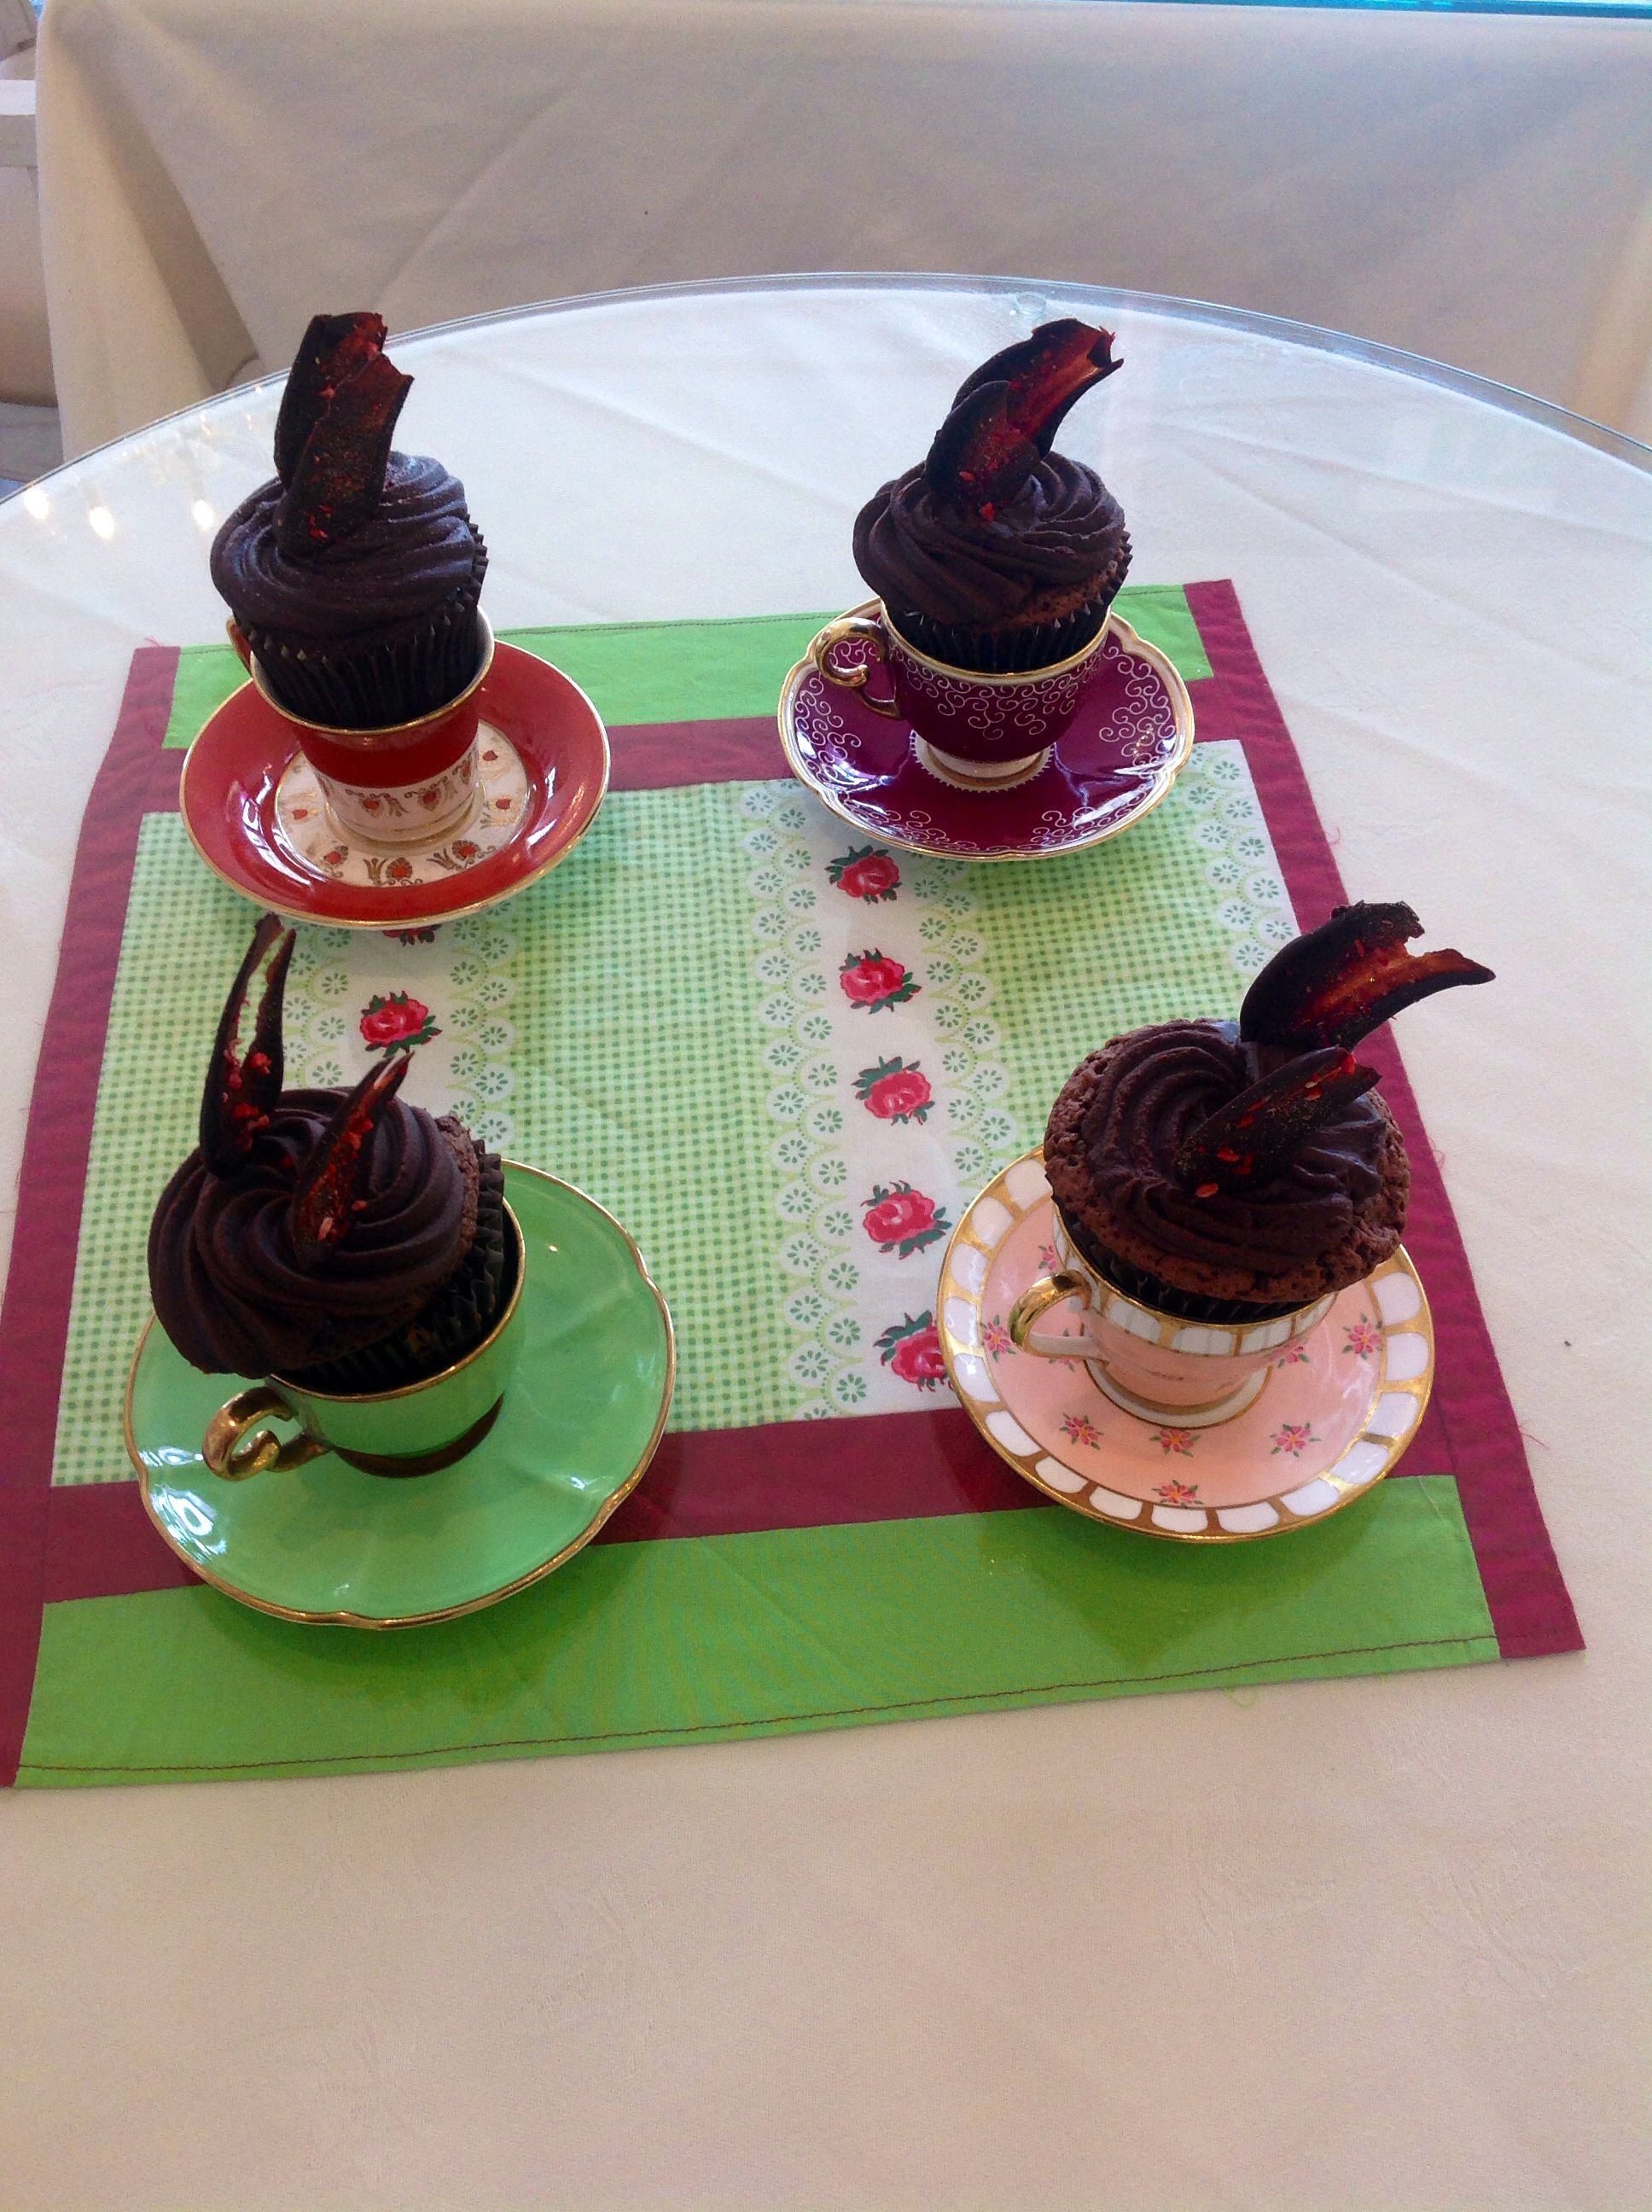 Teacups for cupcakes